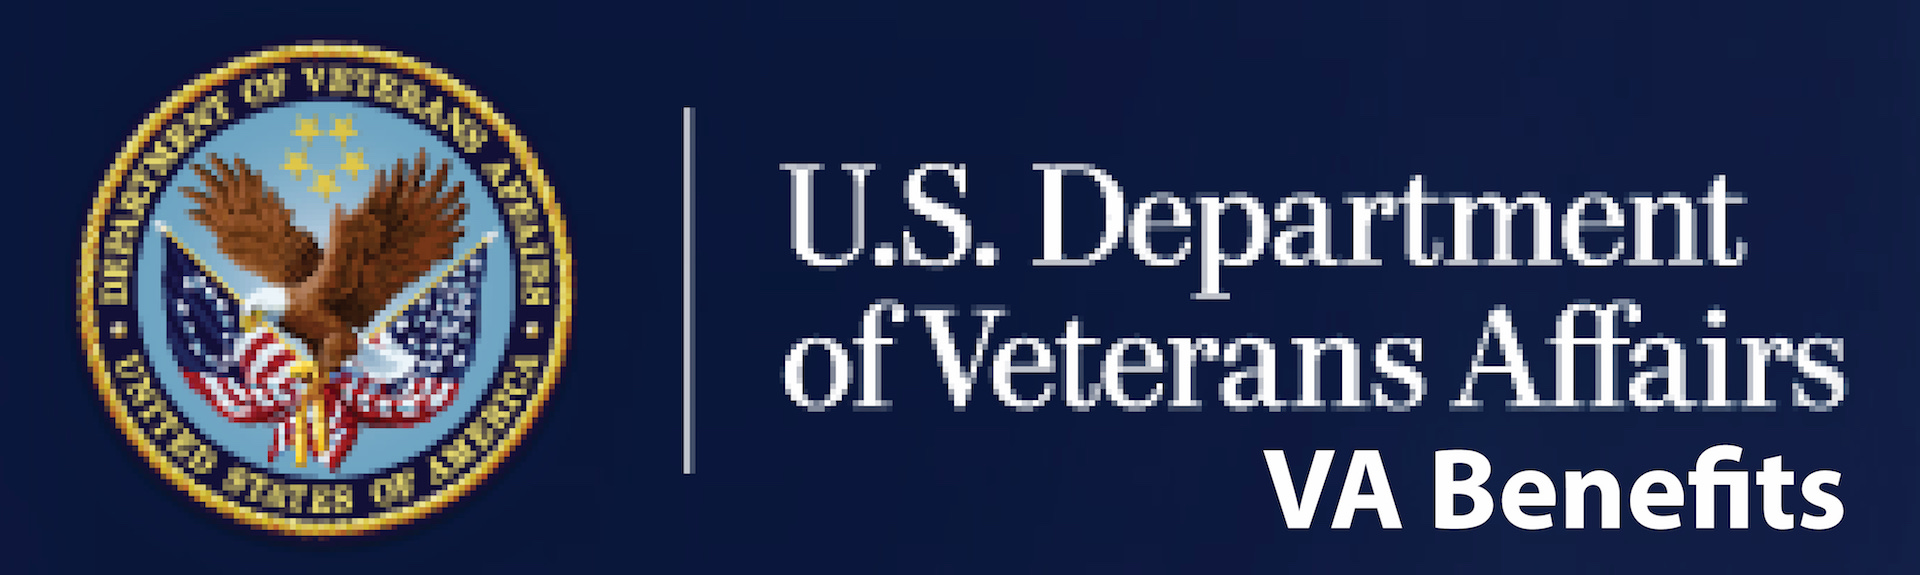 U.S. Department of Veterans Affairs: VA Benefits